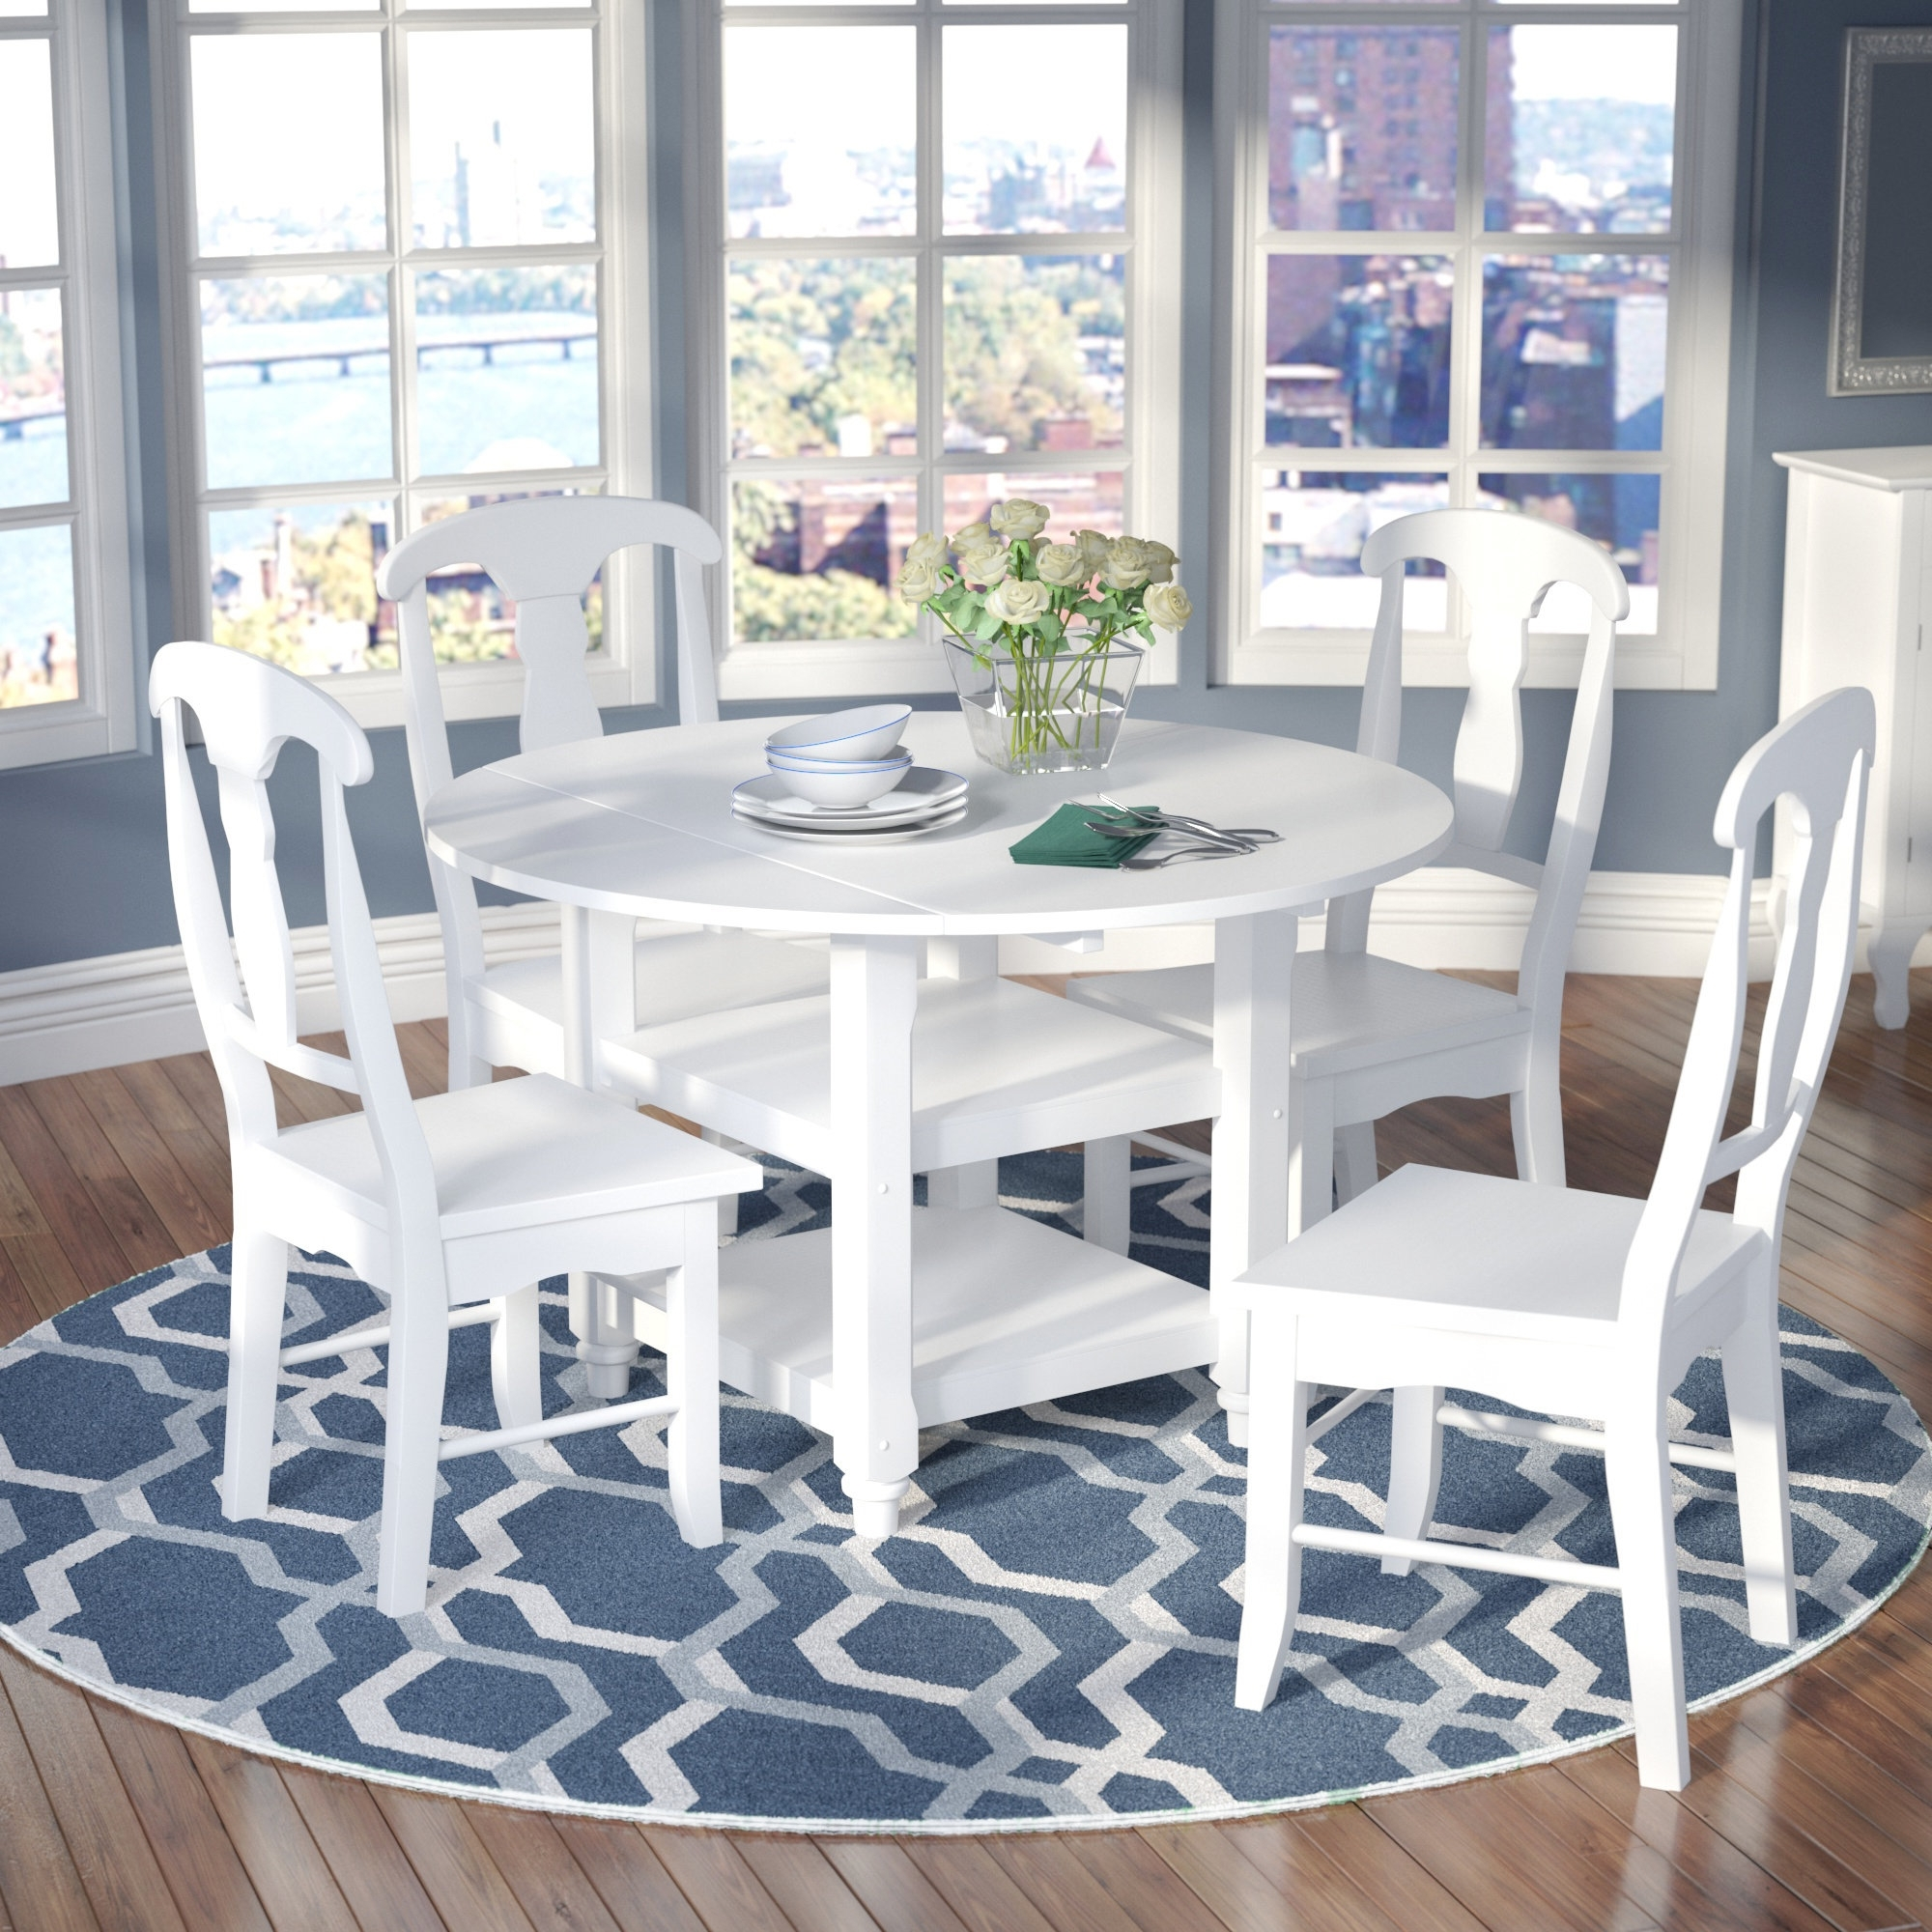 Jaxon 5 Piece Extension Round Dining Sets With Wood Chairs For Preferred Alcott Hill Harwick 5 Piece Dining Set & Reviews (Gallery 14 of 25)